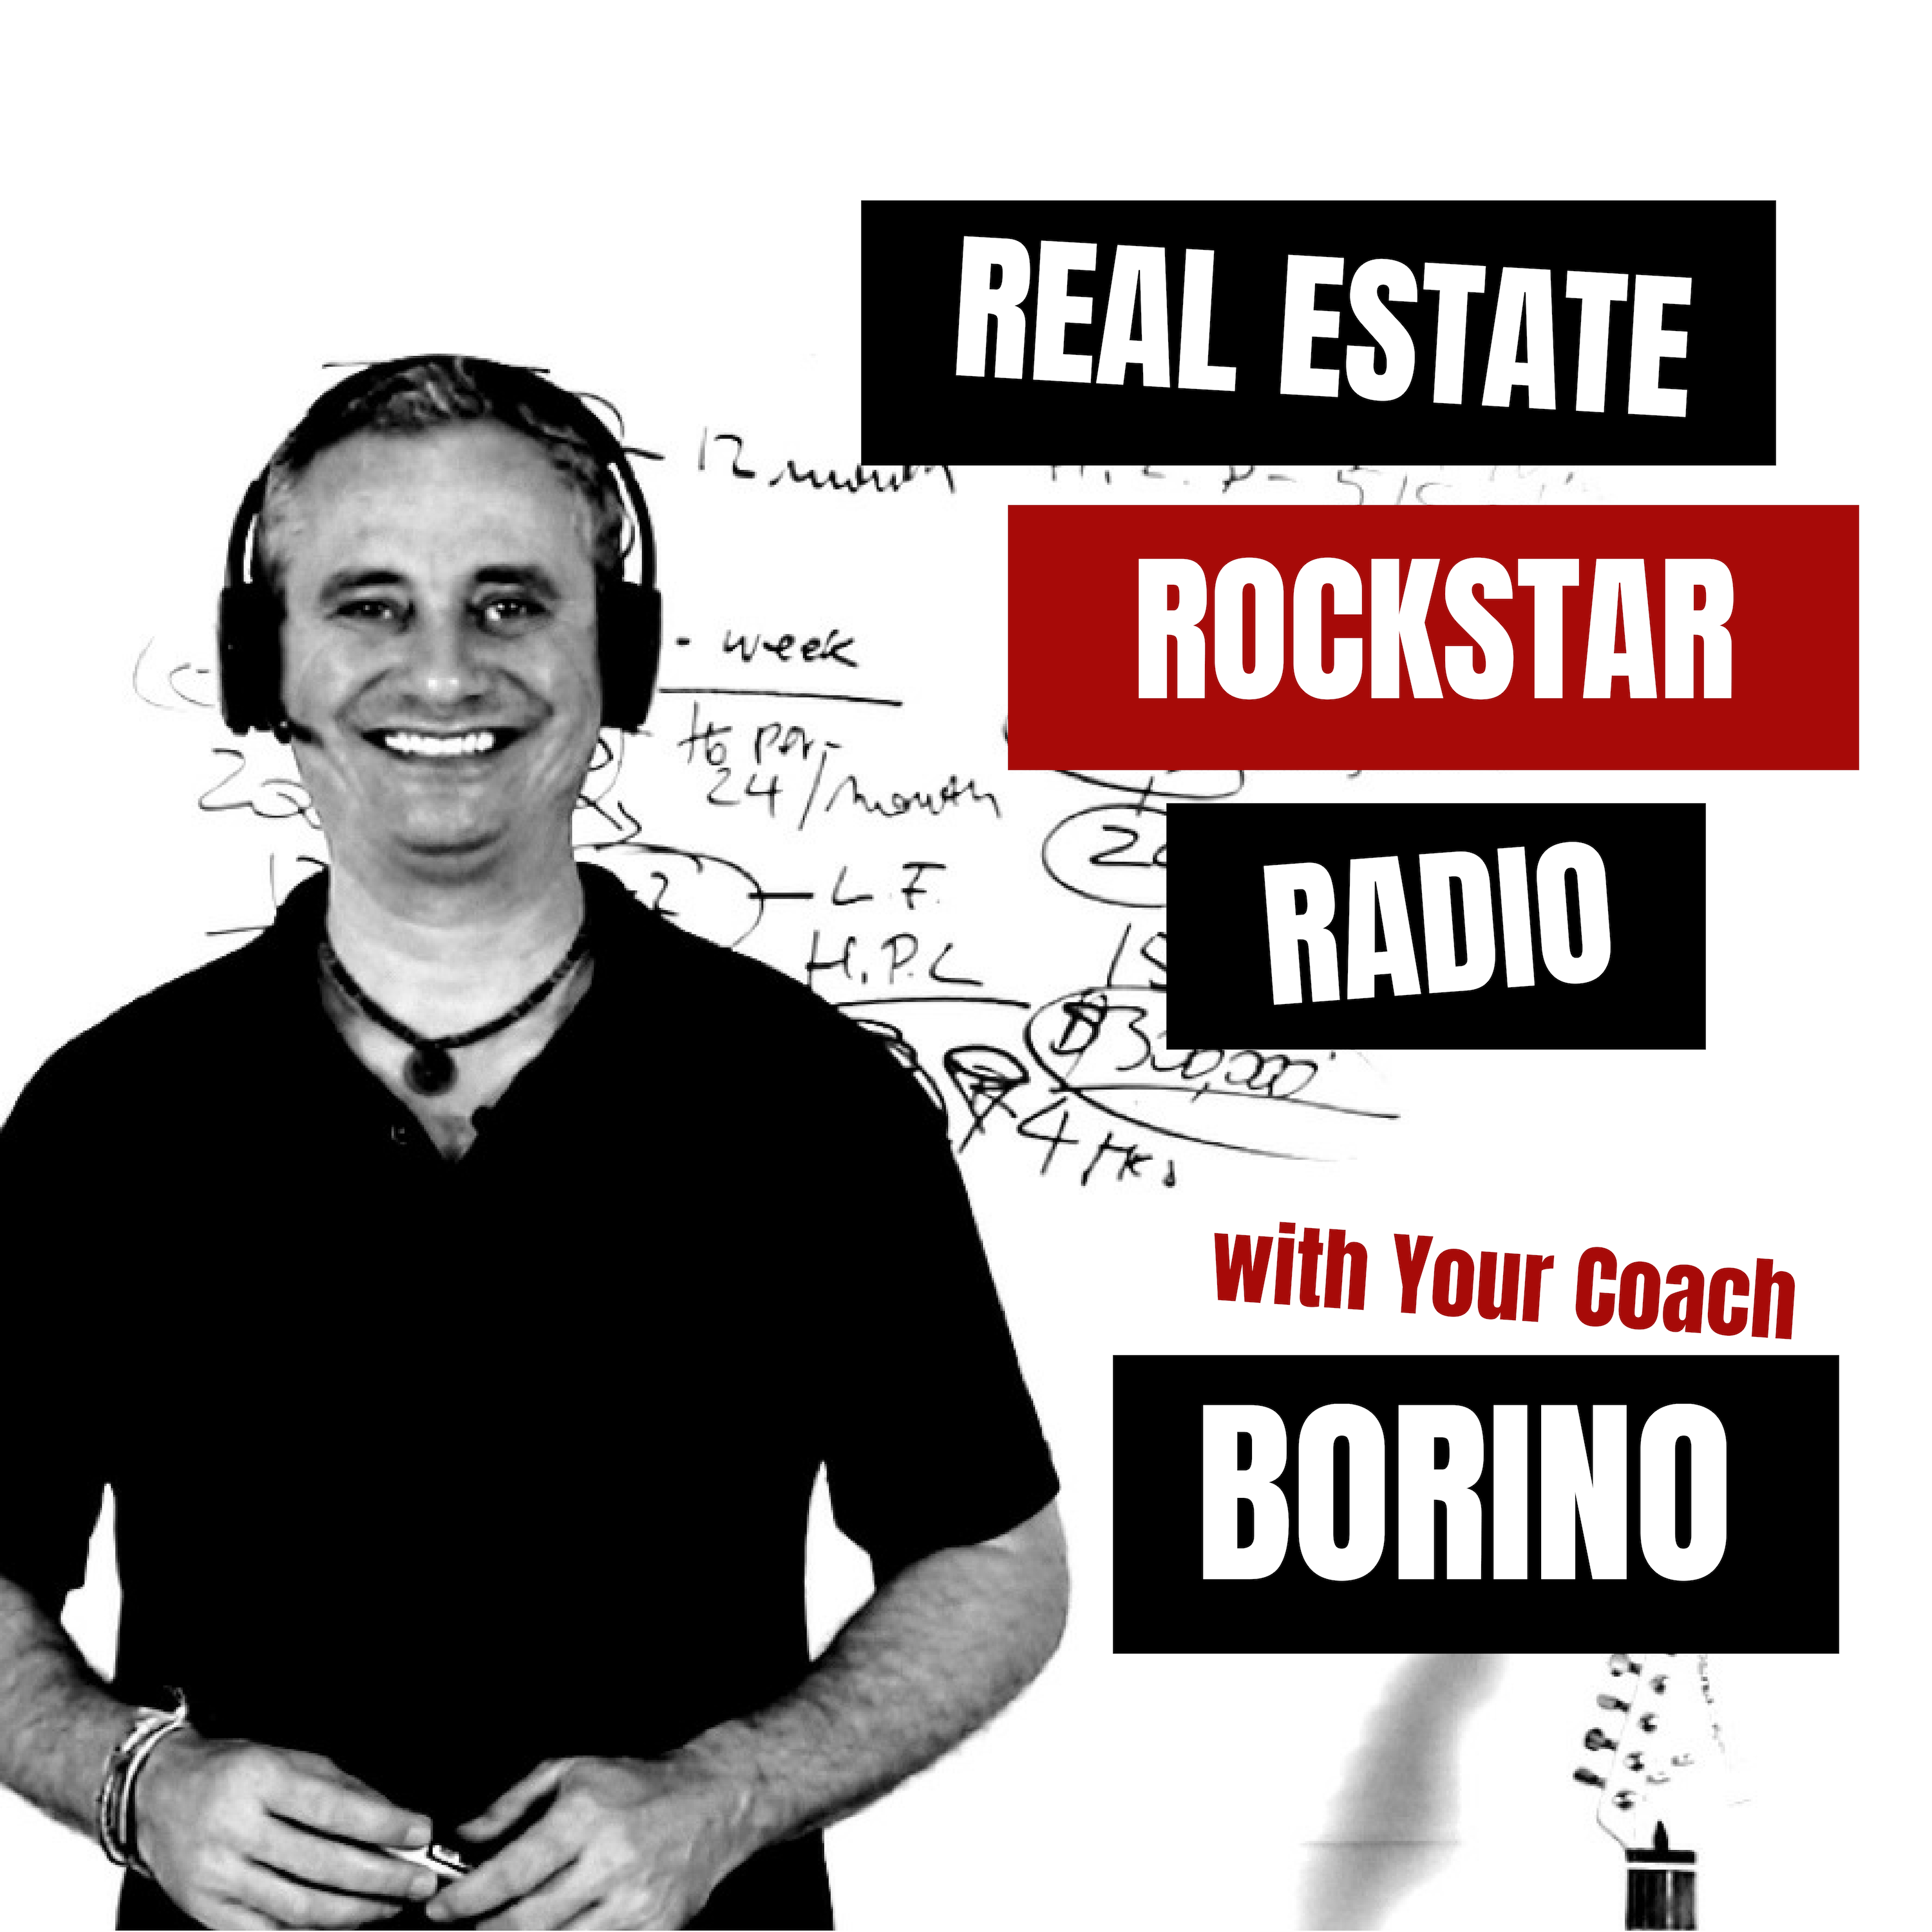 Real Estate Rockstar Radio - With Your Coach Borino on Apple